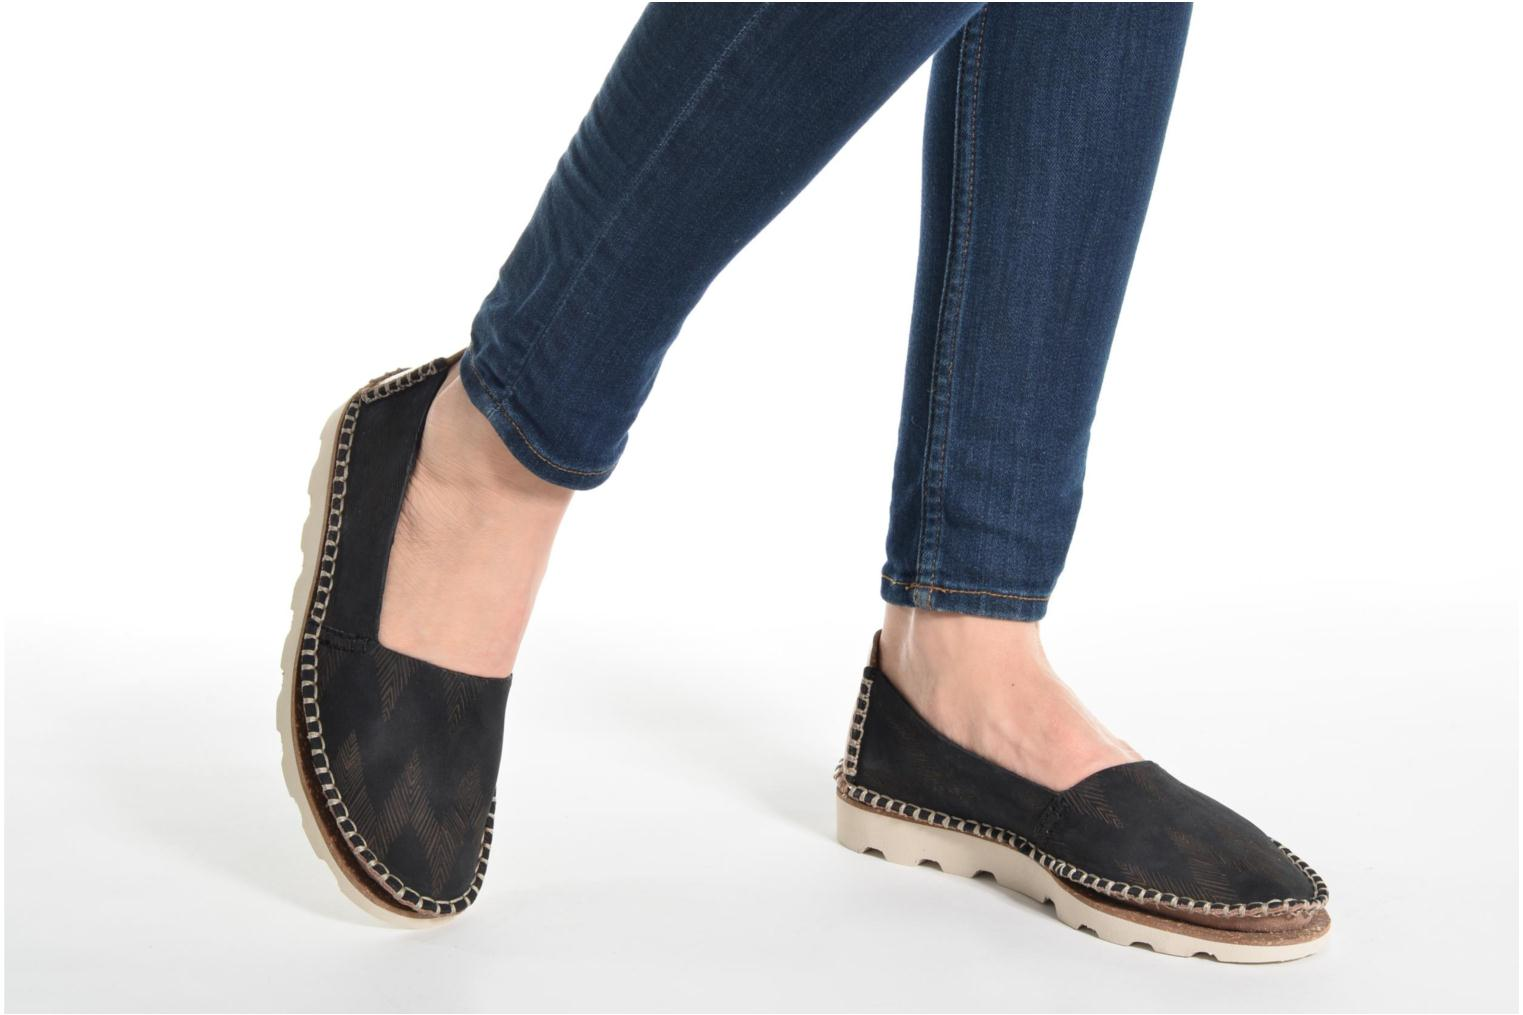 Damara Chic Black Nubuck